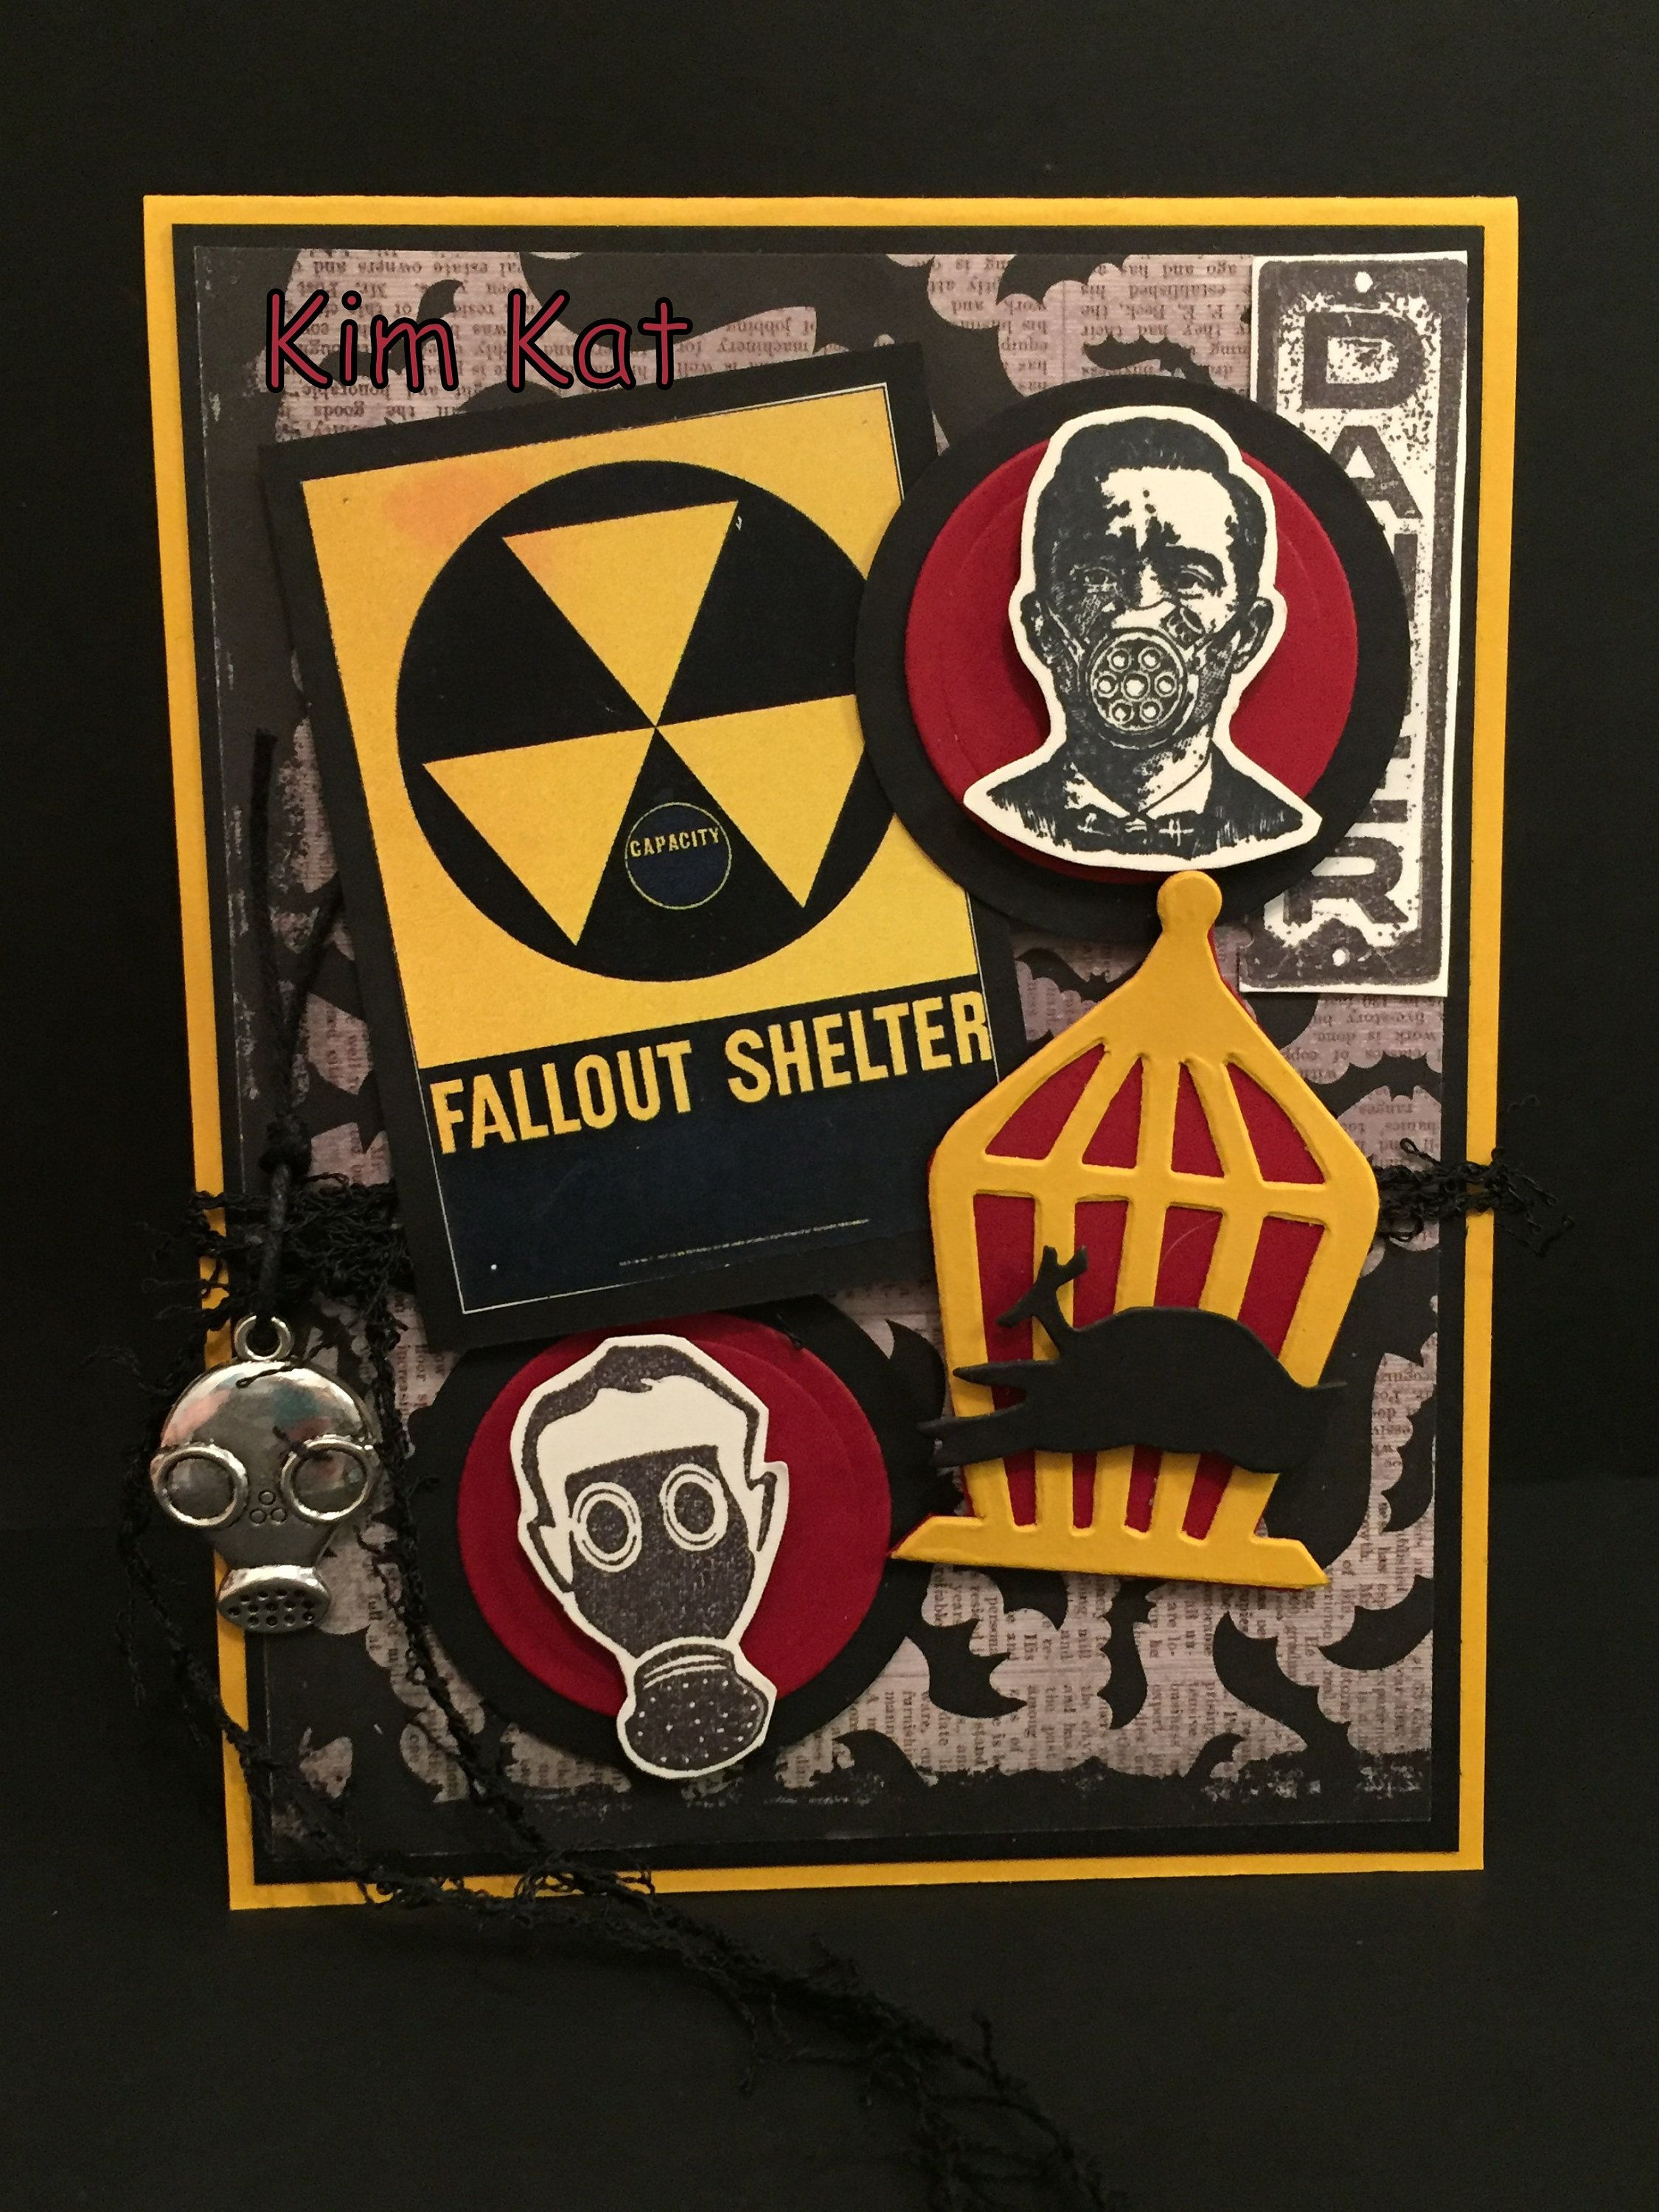 Fallout Shelter Halloween 2020 Halloween Card Pop Up Chernobyl Disaster Gas Mask Fall Out   Etsy